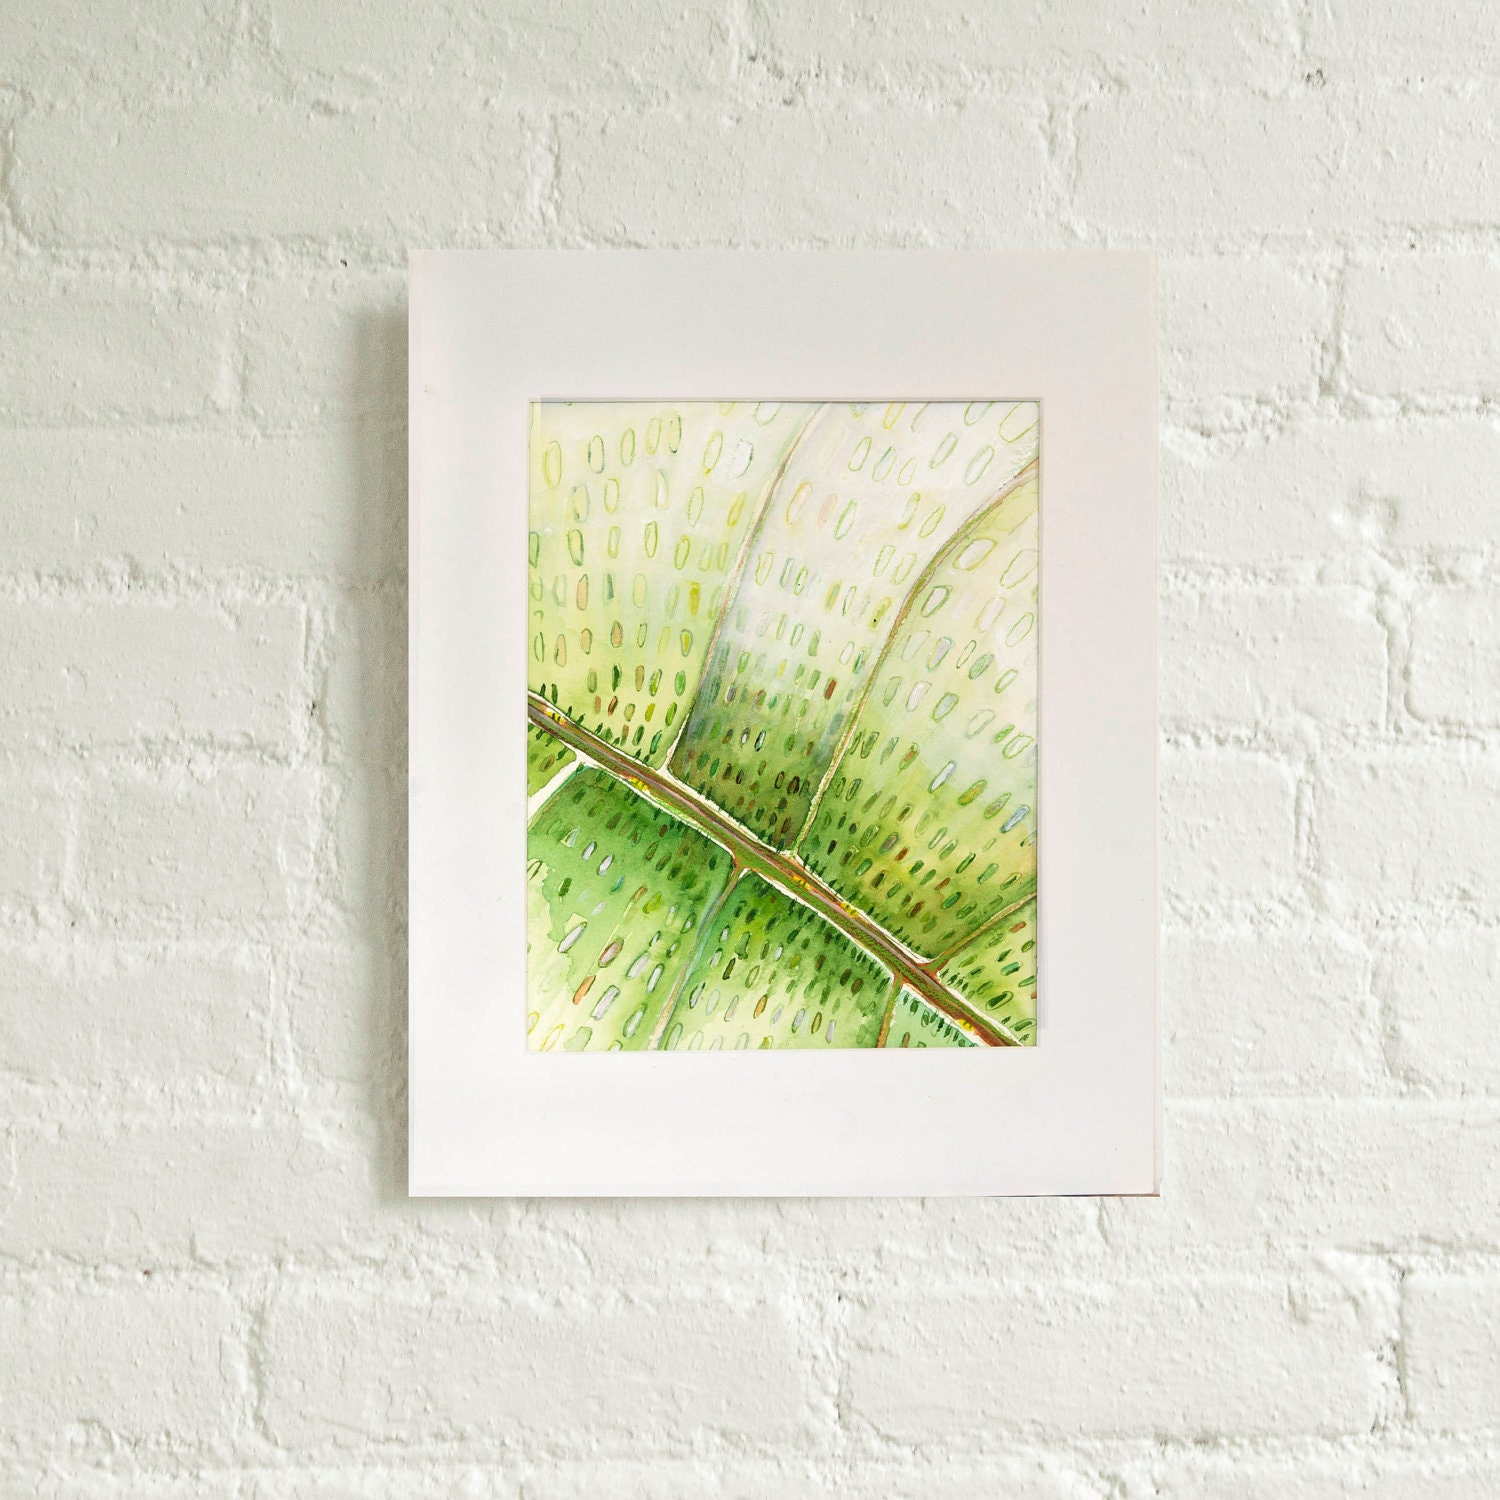 Green City - New York City Art, Original Watercolor painting, illustration - MyNewYorkCity